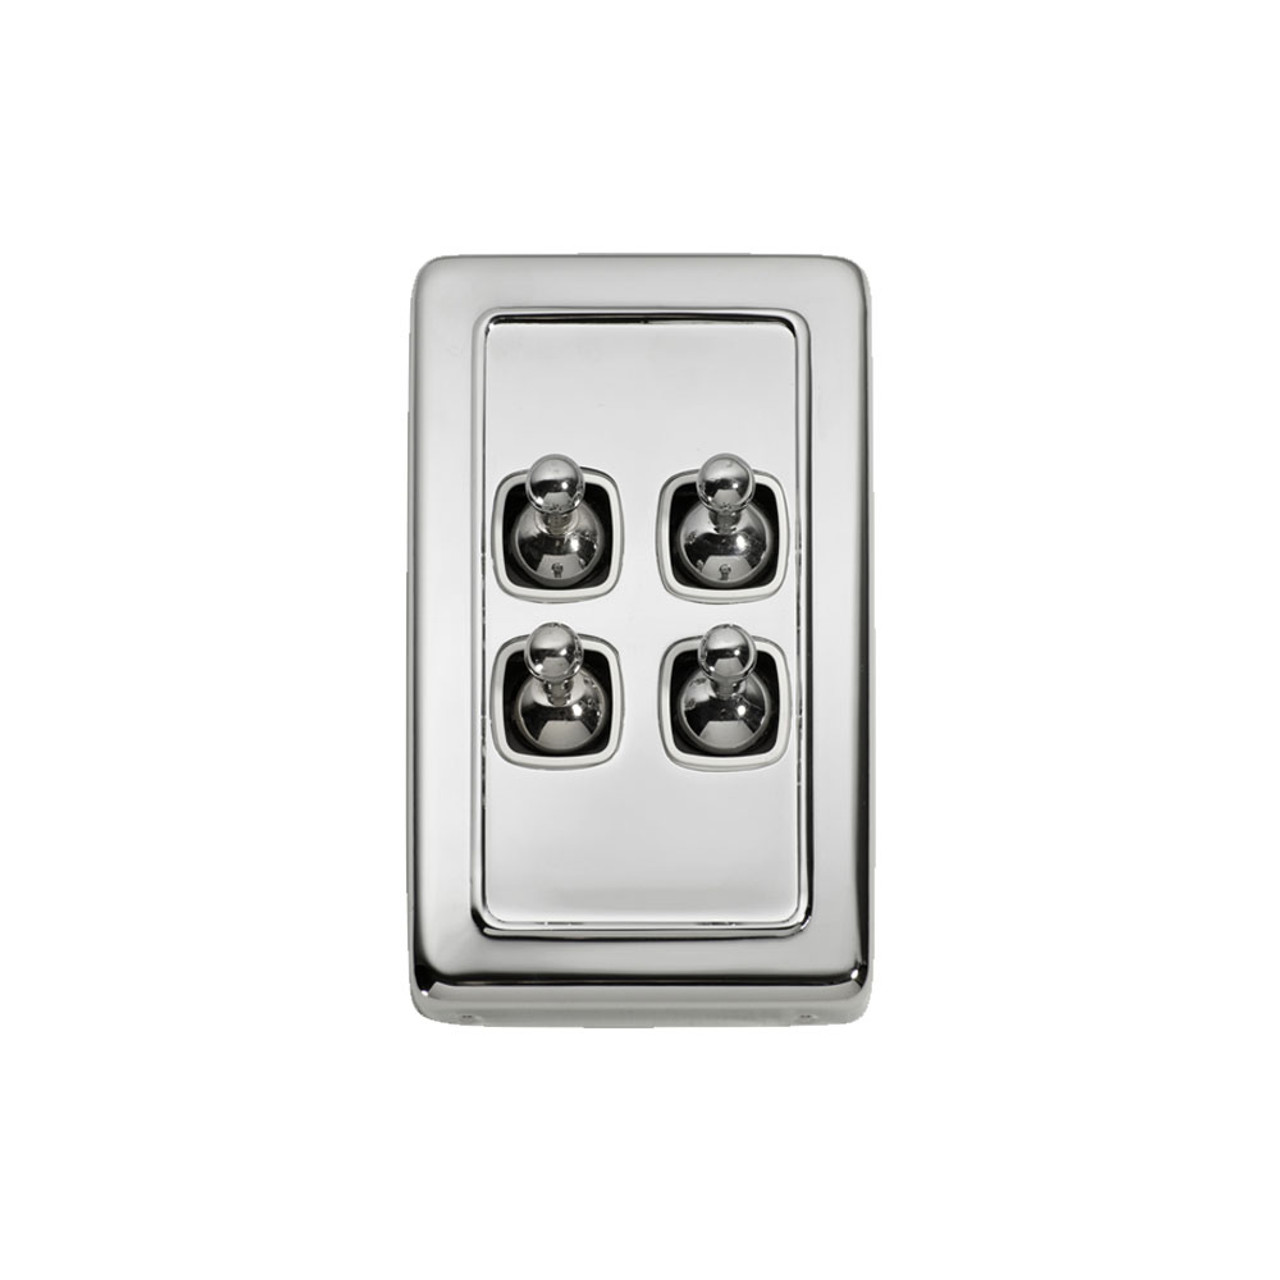 4 Gang Flat Plate Heritage Light Switches - Chrome Toggle